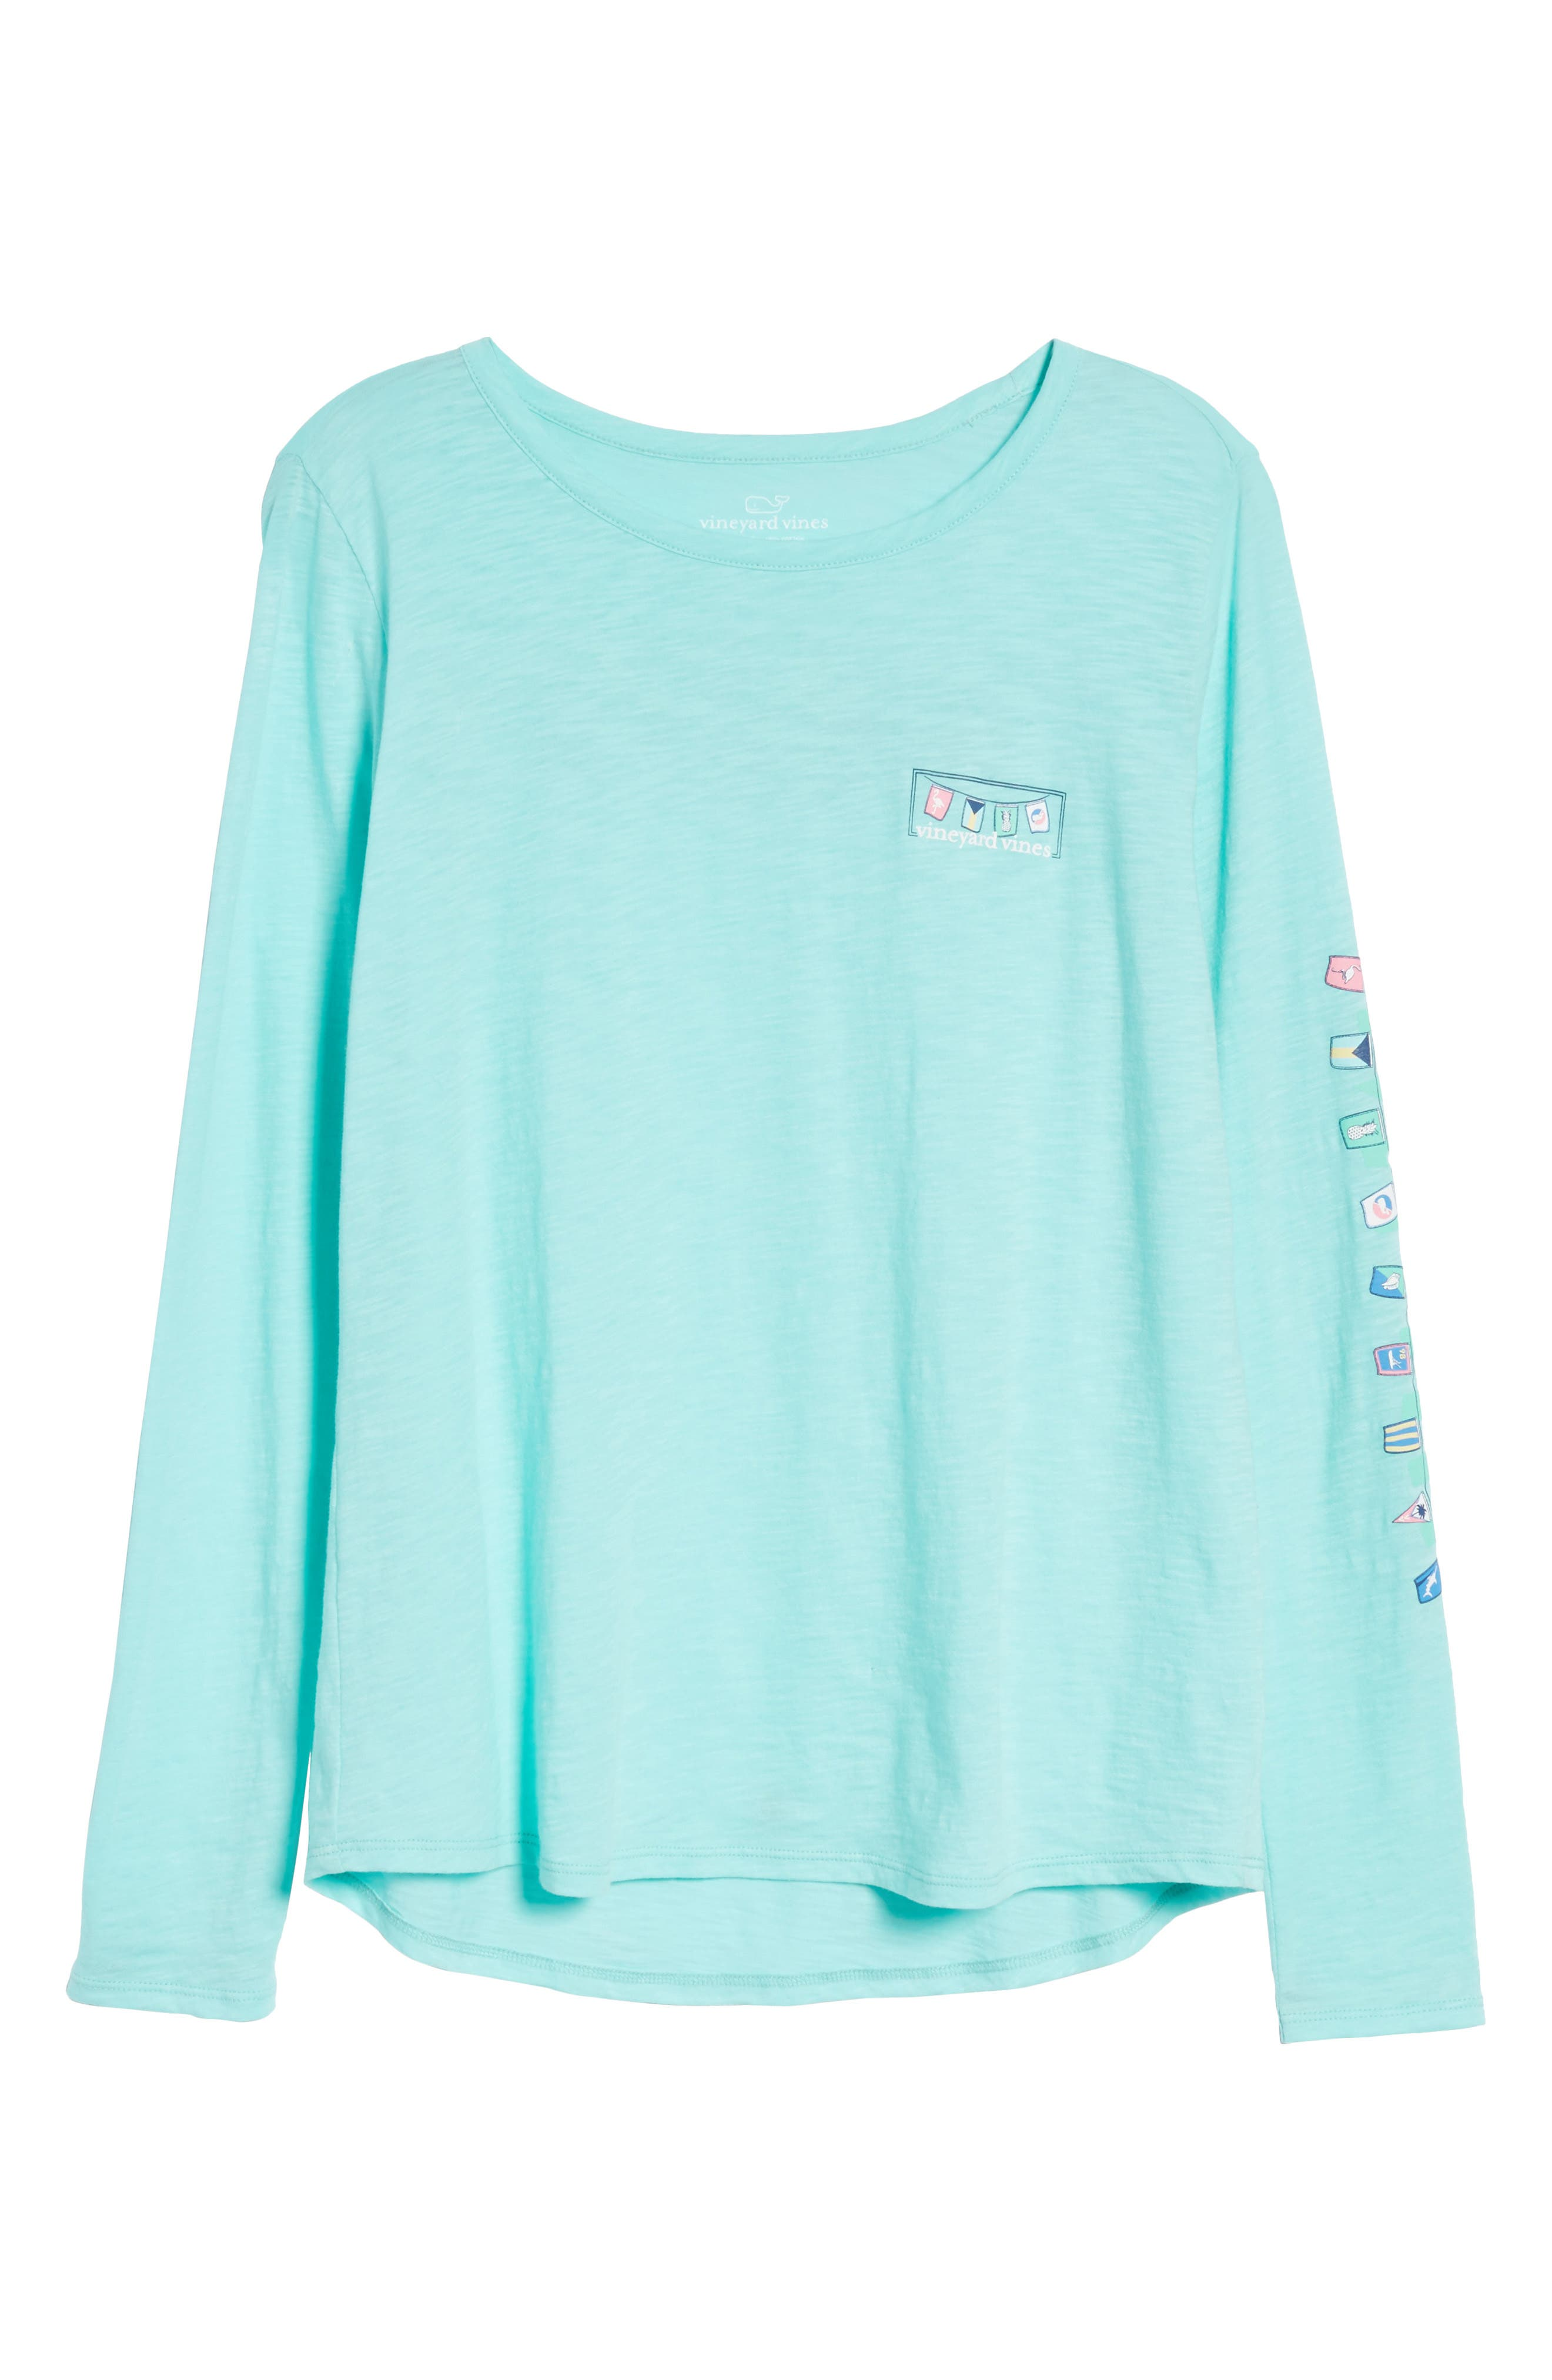 Rafter Long Sleeve Cotton Tee,                             Alternate thumbnail 7, color,                             Caicos